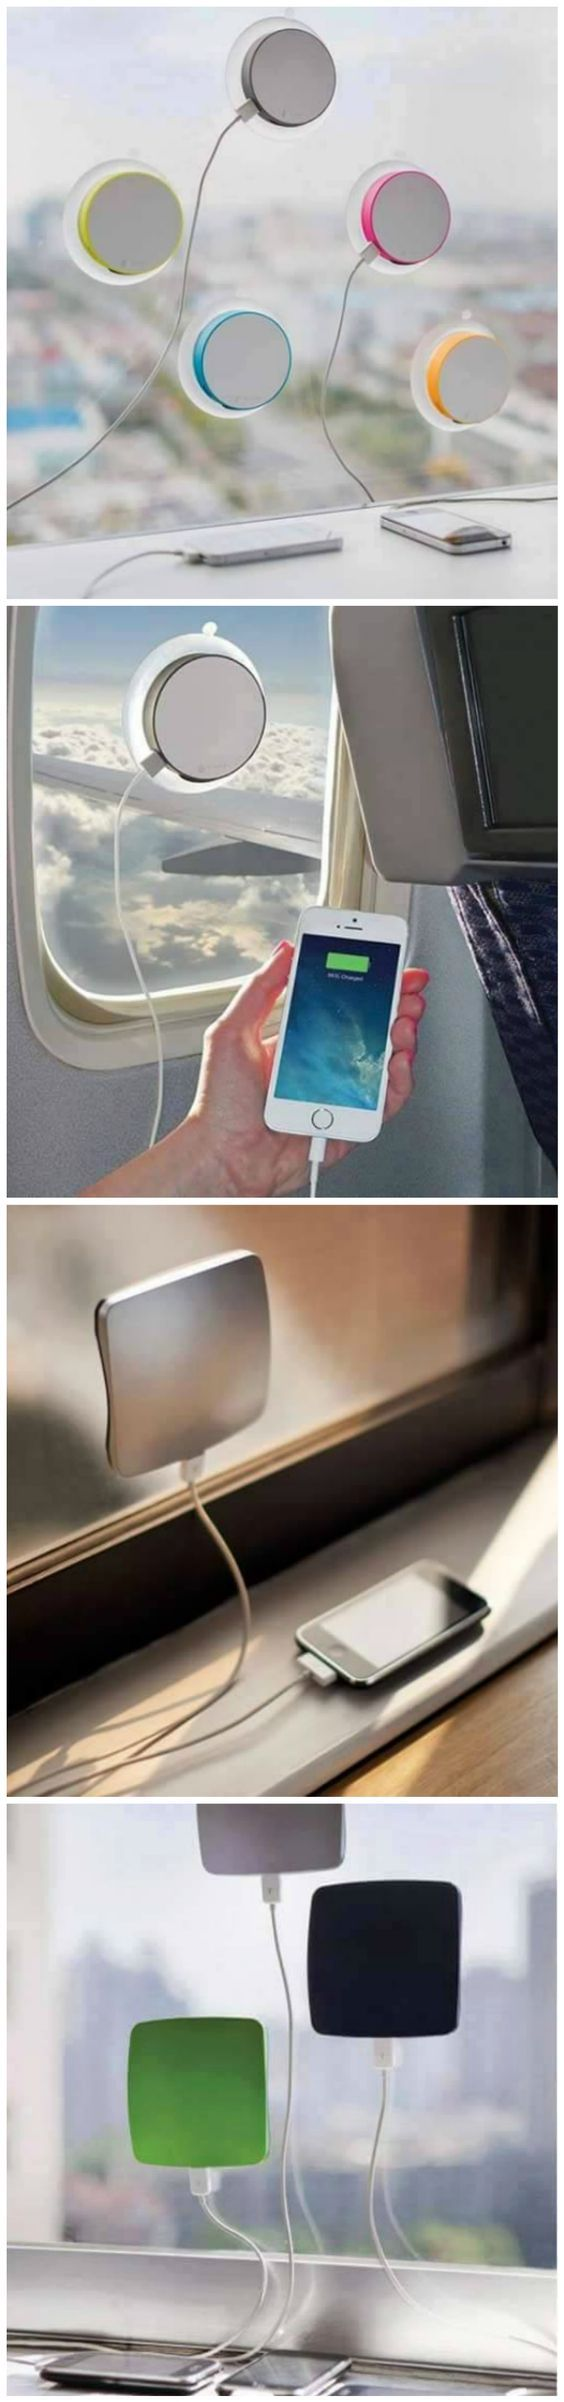 Stay prepared no matter where you're traveling with this window-mounted solar rechargeable power bank. Designed to get you out of a jam, it features a 2000mAh lithium-ion internal battery that can provide a boost of energy for your smartphone or tablet device.